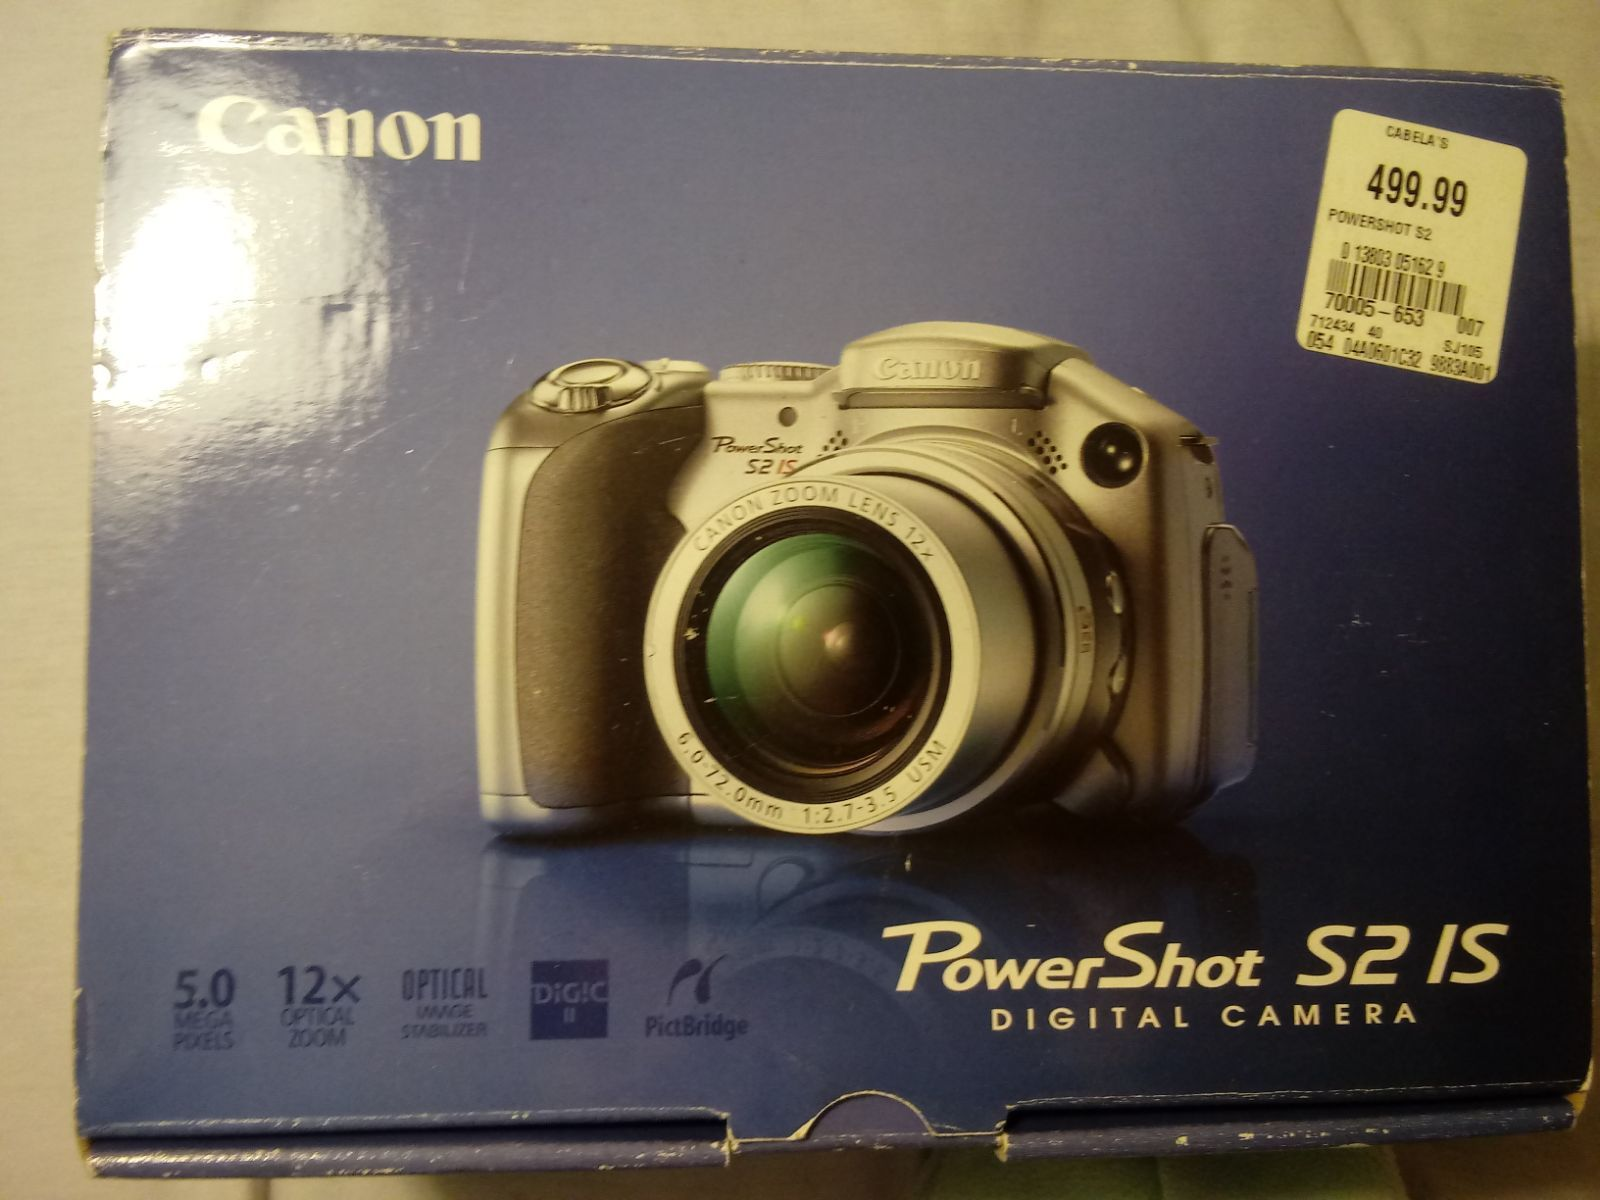 Canon Powershot S2 Is Digital Camera Comes With Manual And All Chords As Seen In Picture Good For Everyday Use Or As First Ca Camera Digital Camera Powershot